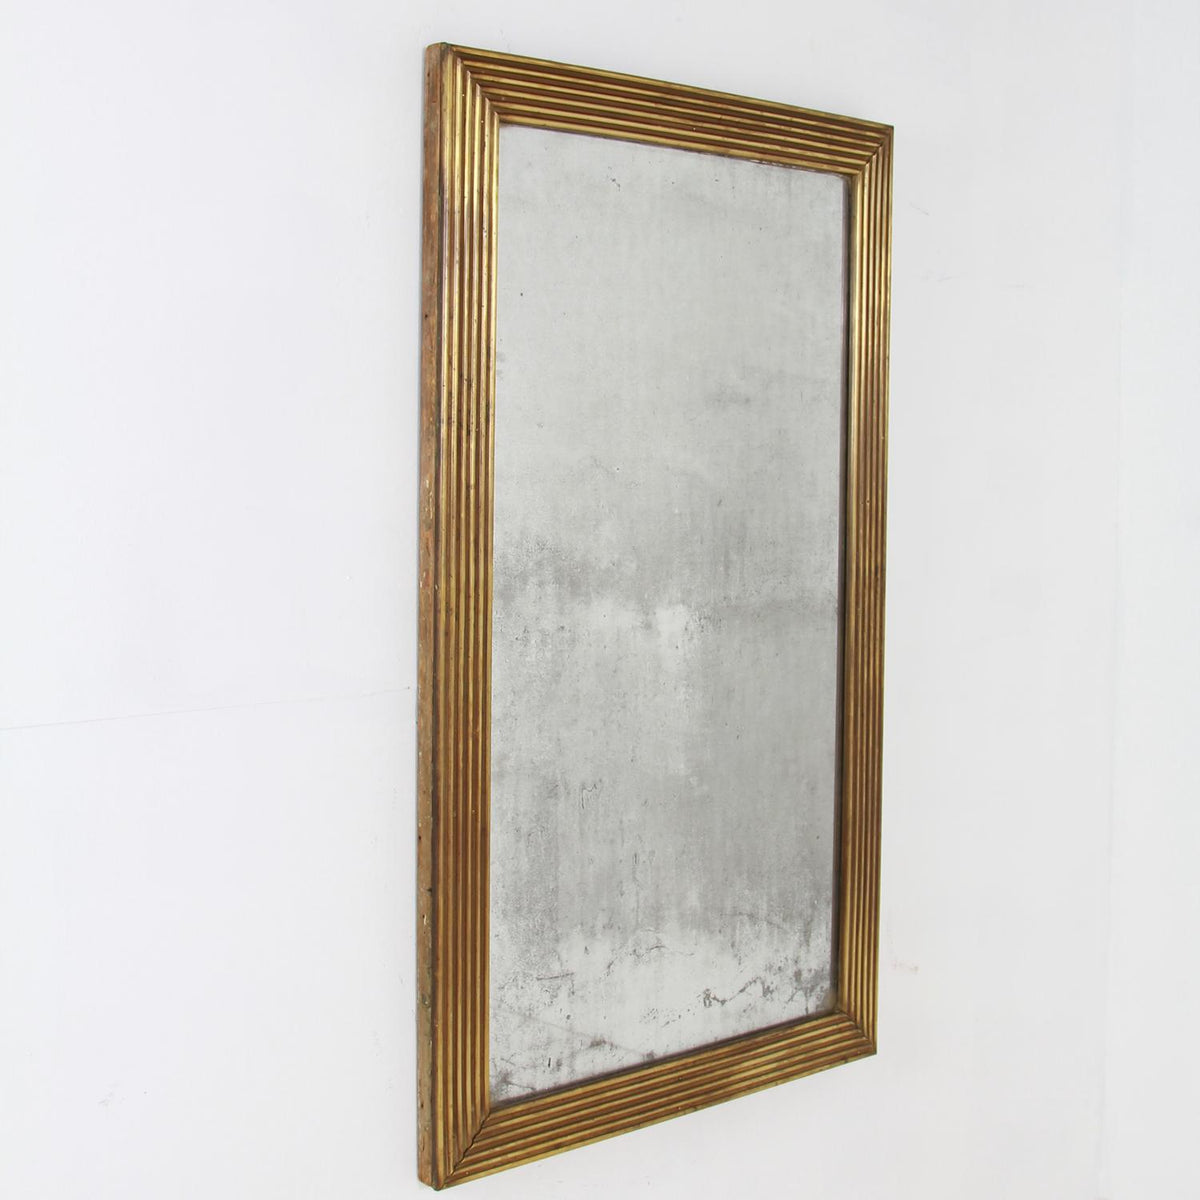 French 19th Century Mercury Mirror With Reeded Brass Frame